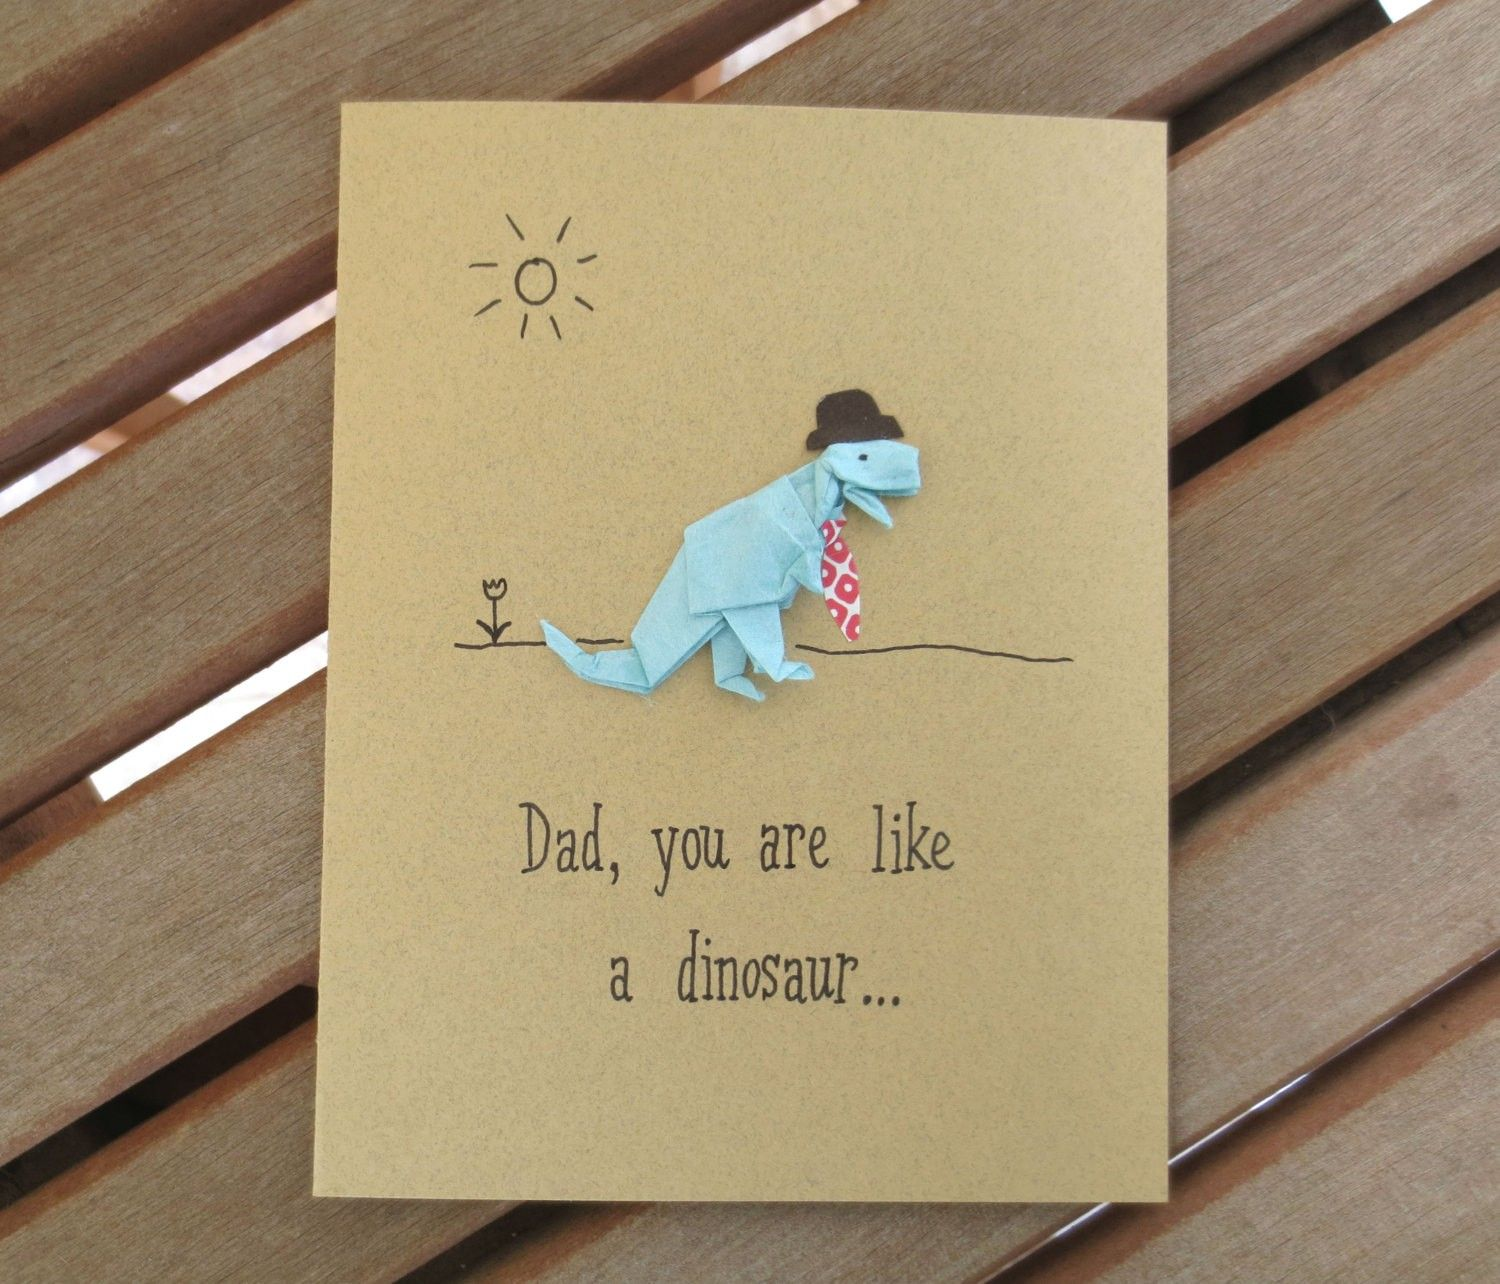 60th birthday card ideas Google Search (With images